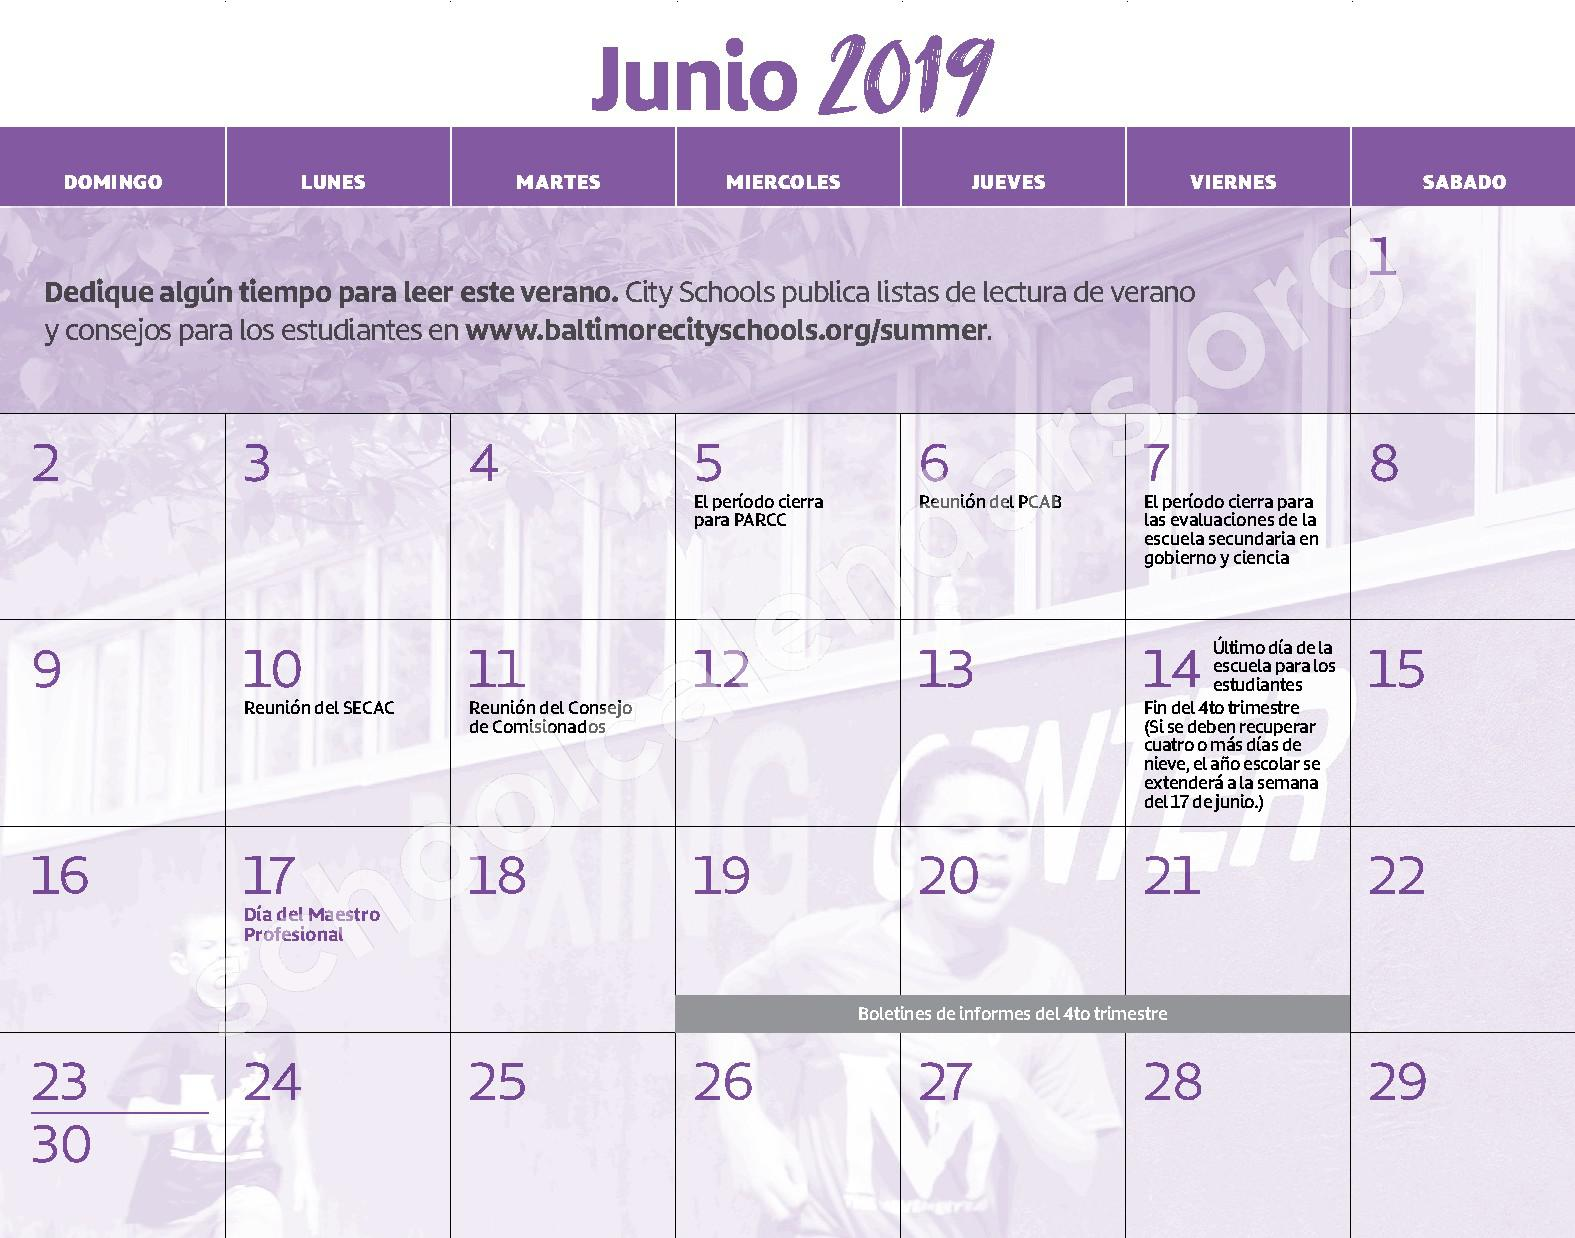 2018 - 2019 Calendario Escolar – Baltimore Polytechnic Institute – page 13